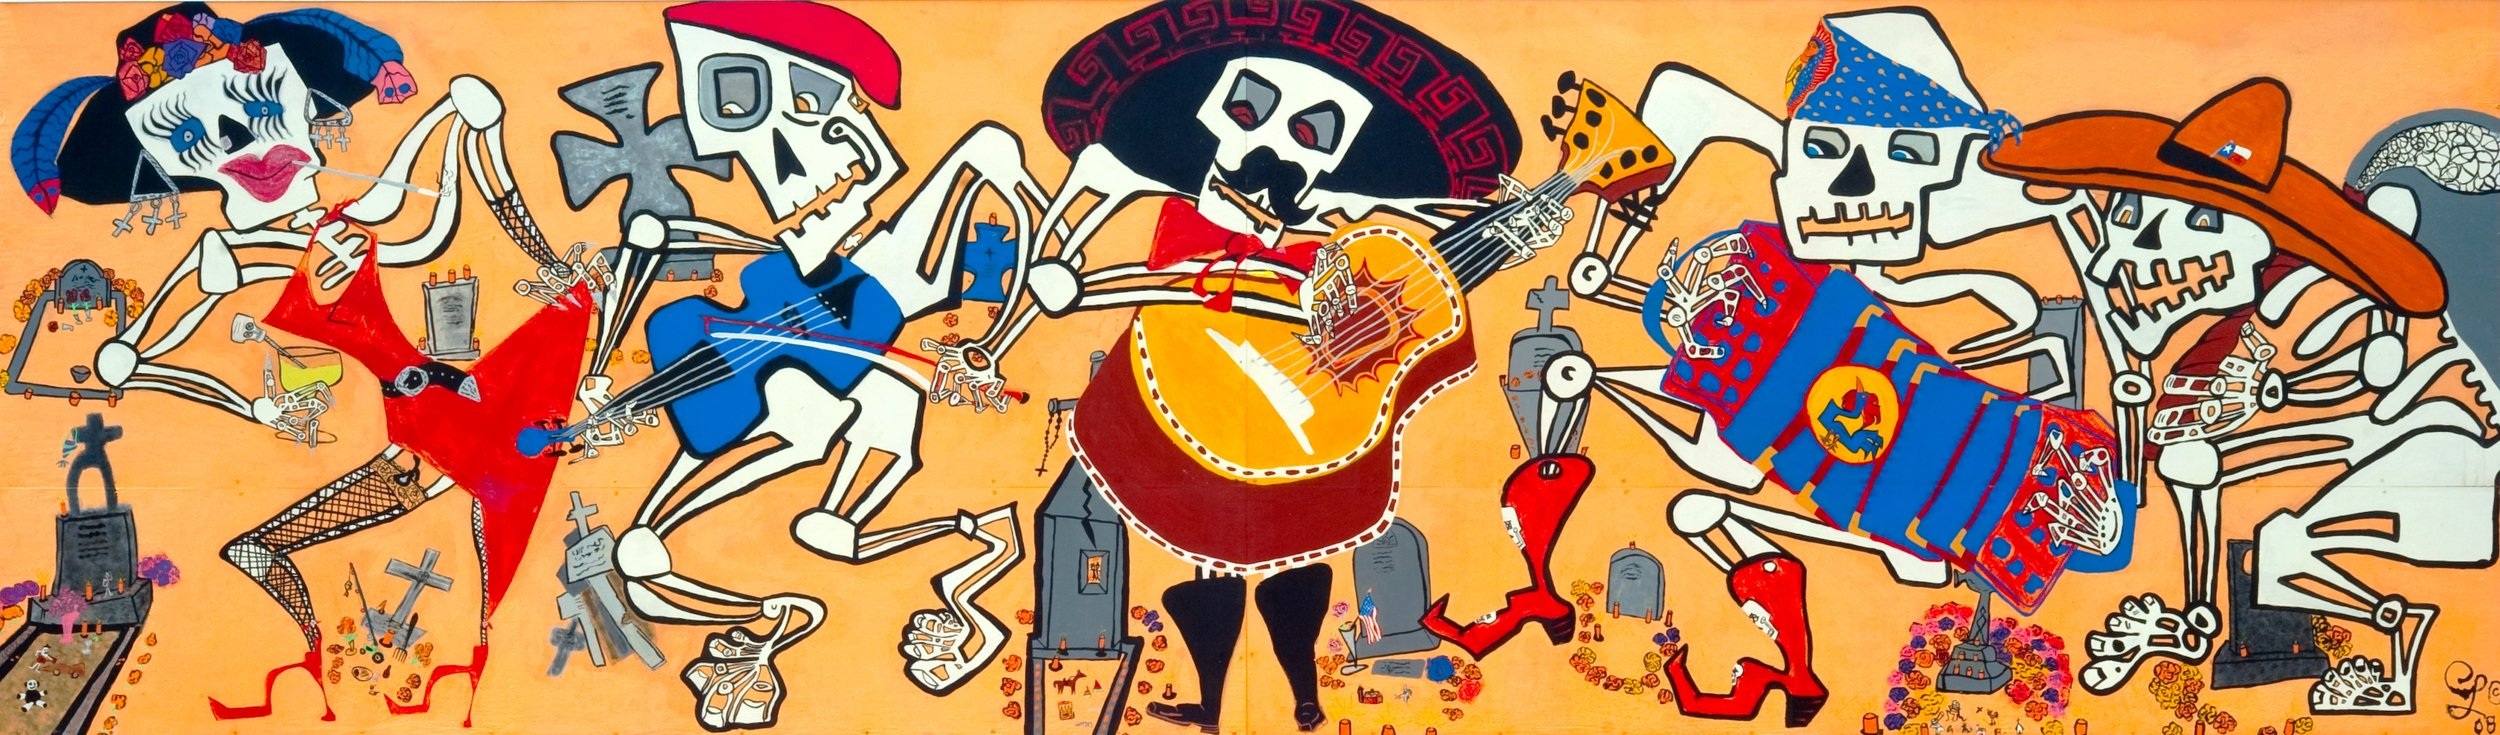 "Dia de Los Muertos   This limited edition (250), signed and numbered giclée of eRic's ""Dia de los Muertos"" mural can be yours - 8"" X 23"" for $64.00 (includes tax & freight). The mural (20ft X 6ft) has been reproduced and installed in the Valley International Airport, Harlingen, Texas and is archived in The National Heritage Preservation Society's Library of American murals and  Rescue Murals Project."